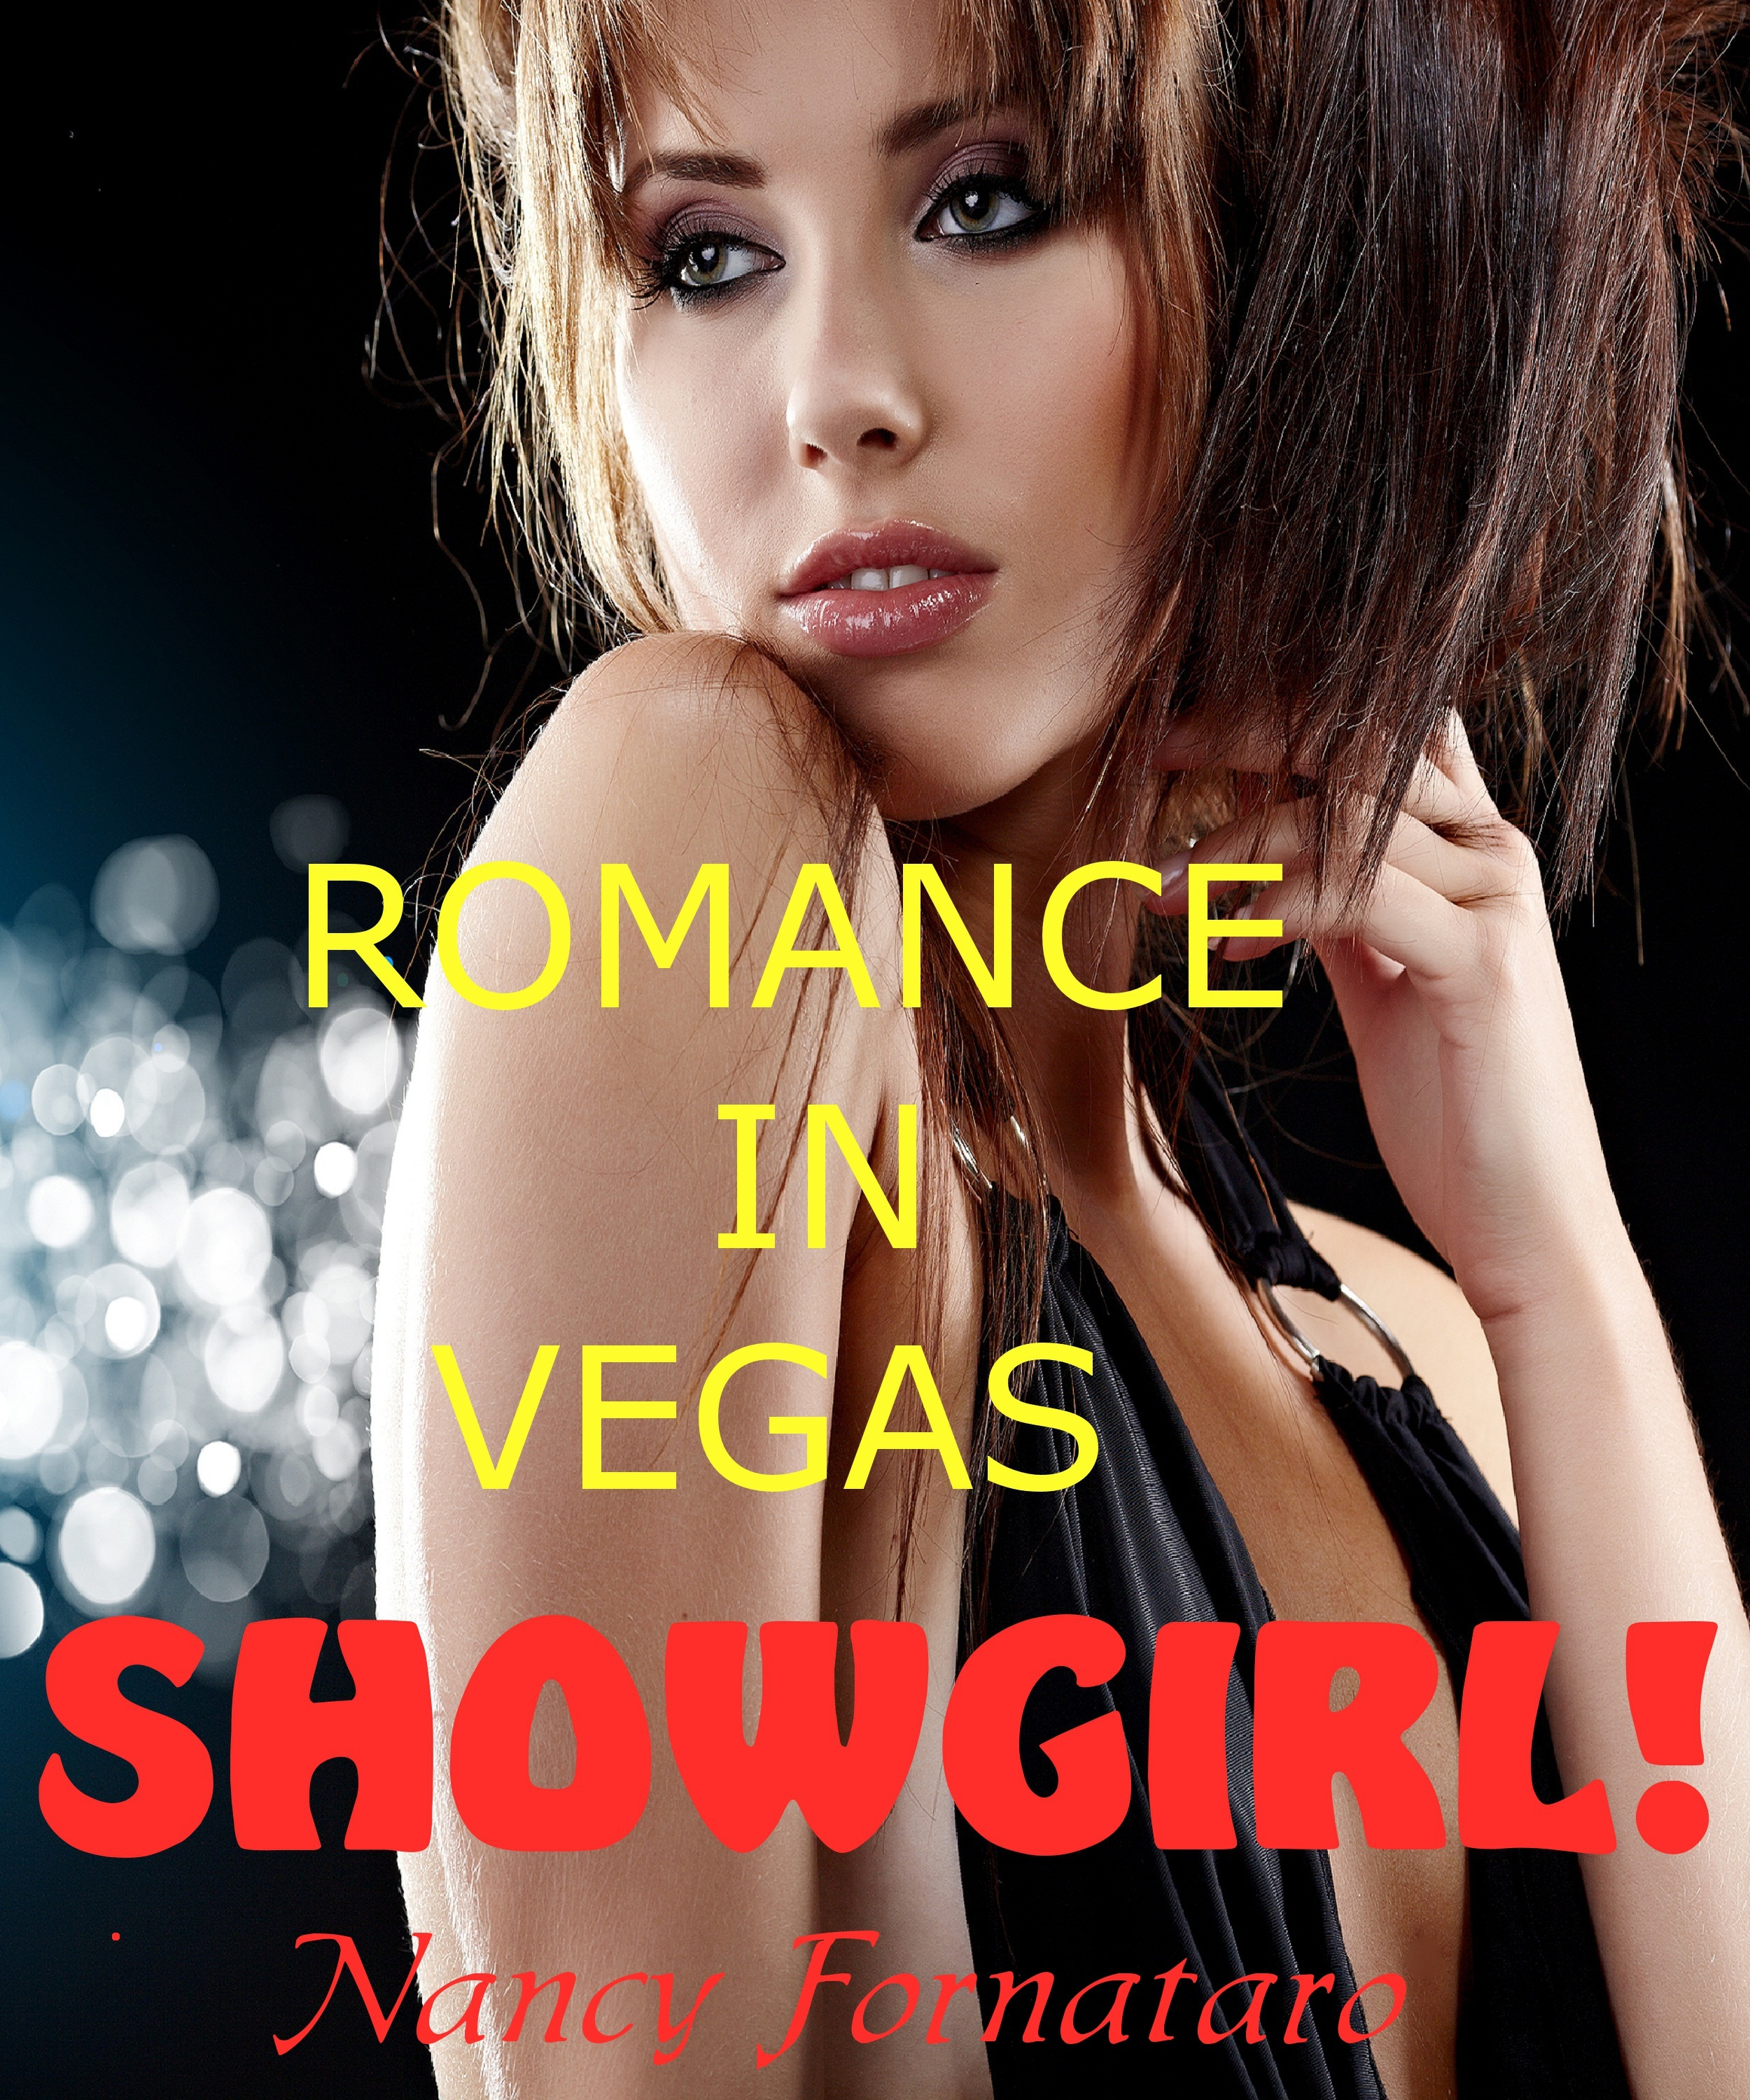 Romance in Vegas: Showgirl! By: Nancy Fornataro